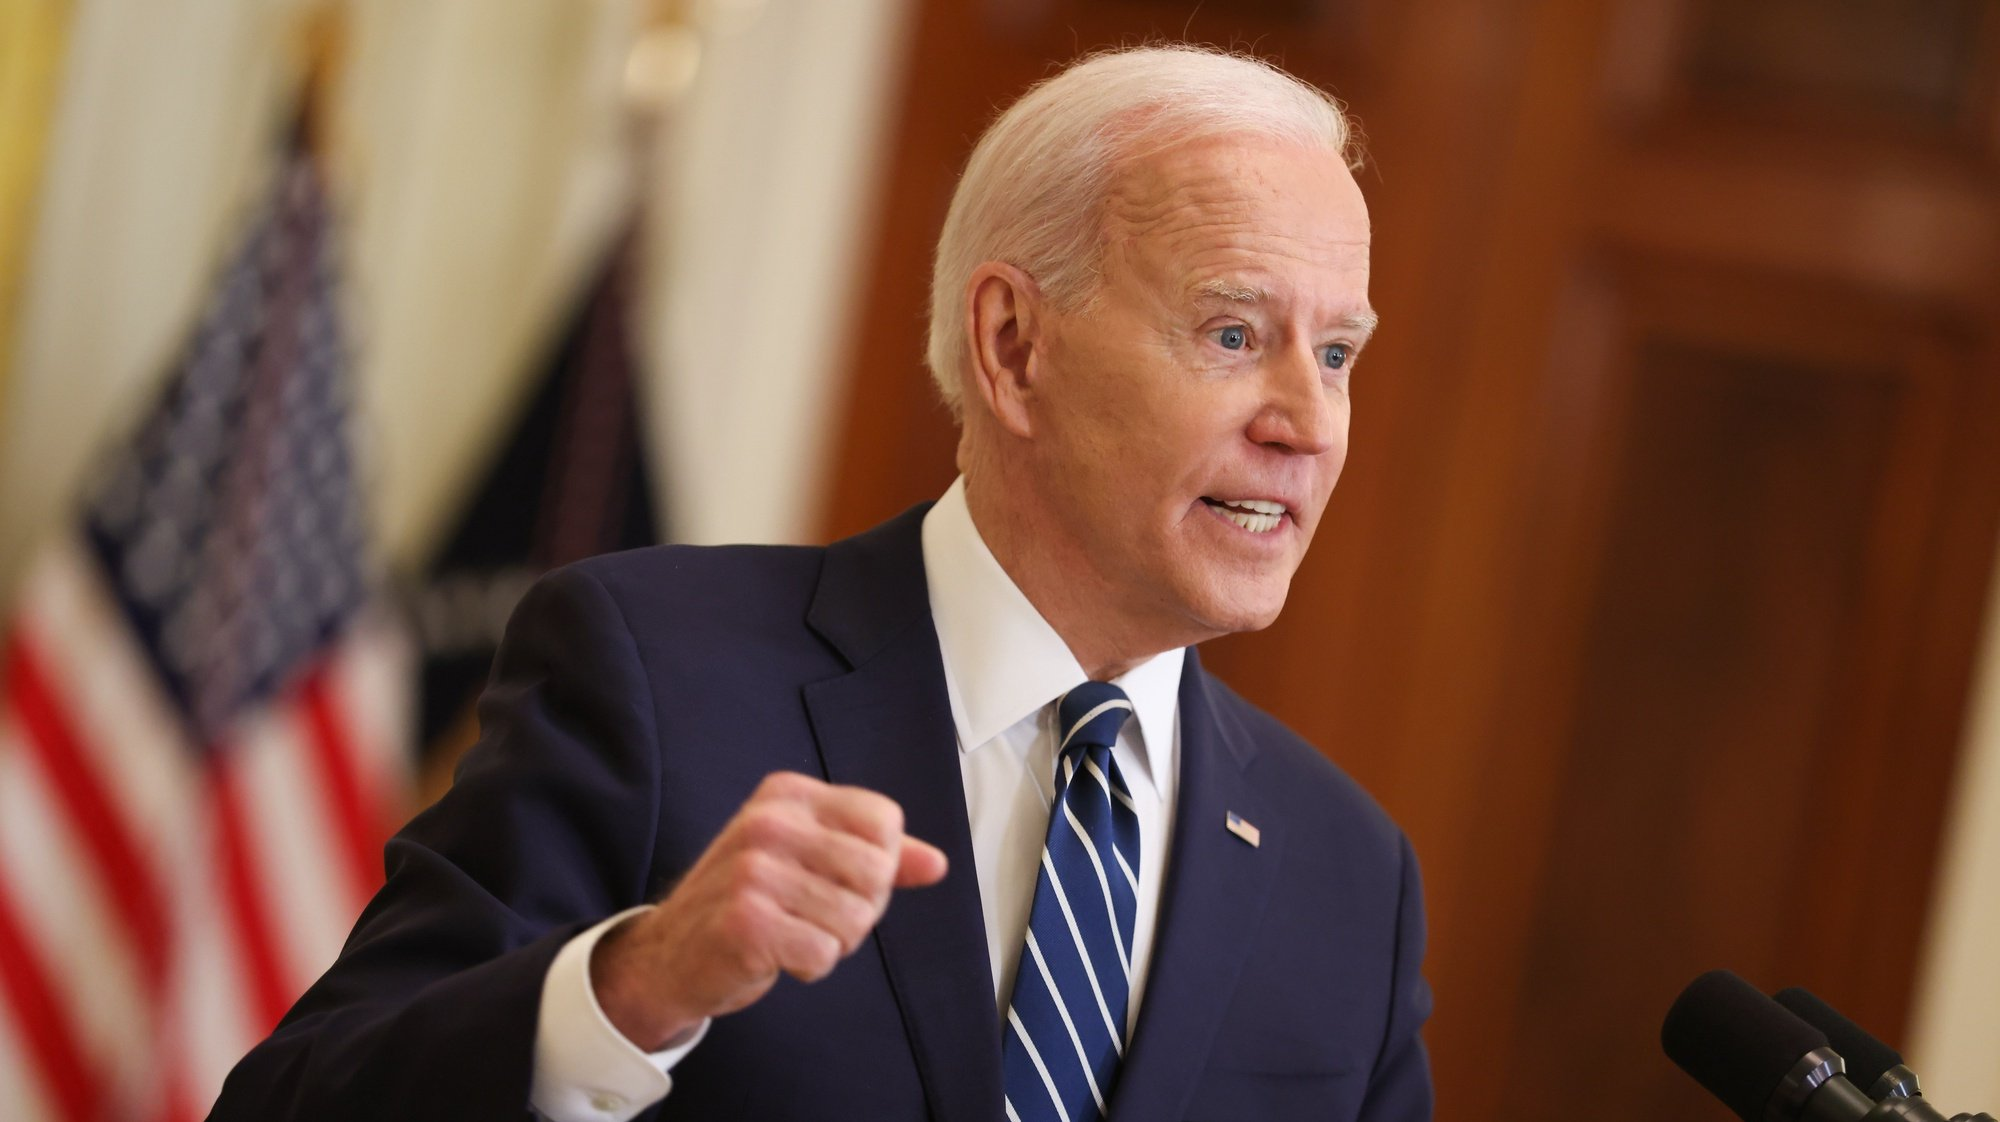 epa09097273 President Joe Biden speaks during the first formal press conference of his presidency in the East Room of the White House in Washington, in Washington, DC, USA, 25 March 2021.  EPA/OLIVER CONTRERAS / POOL